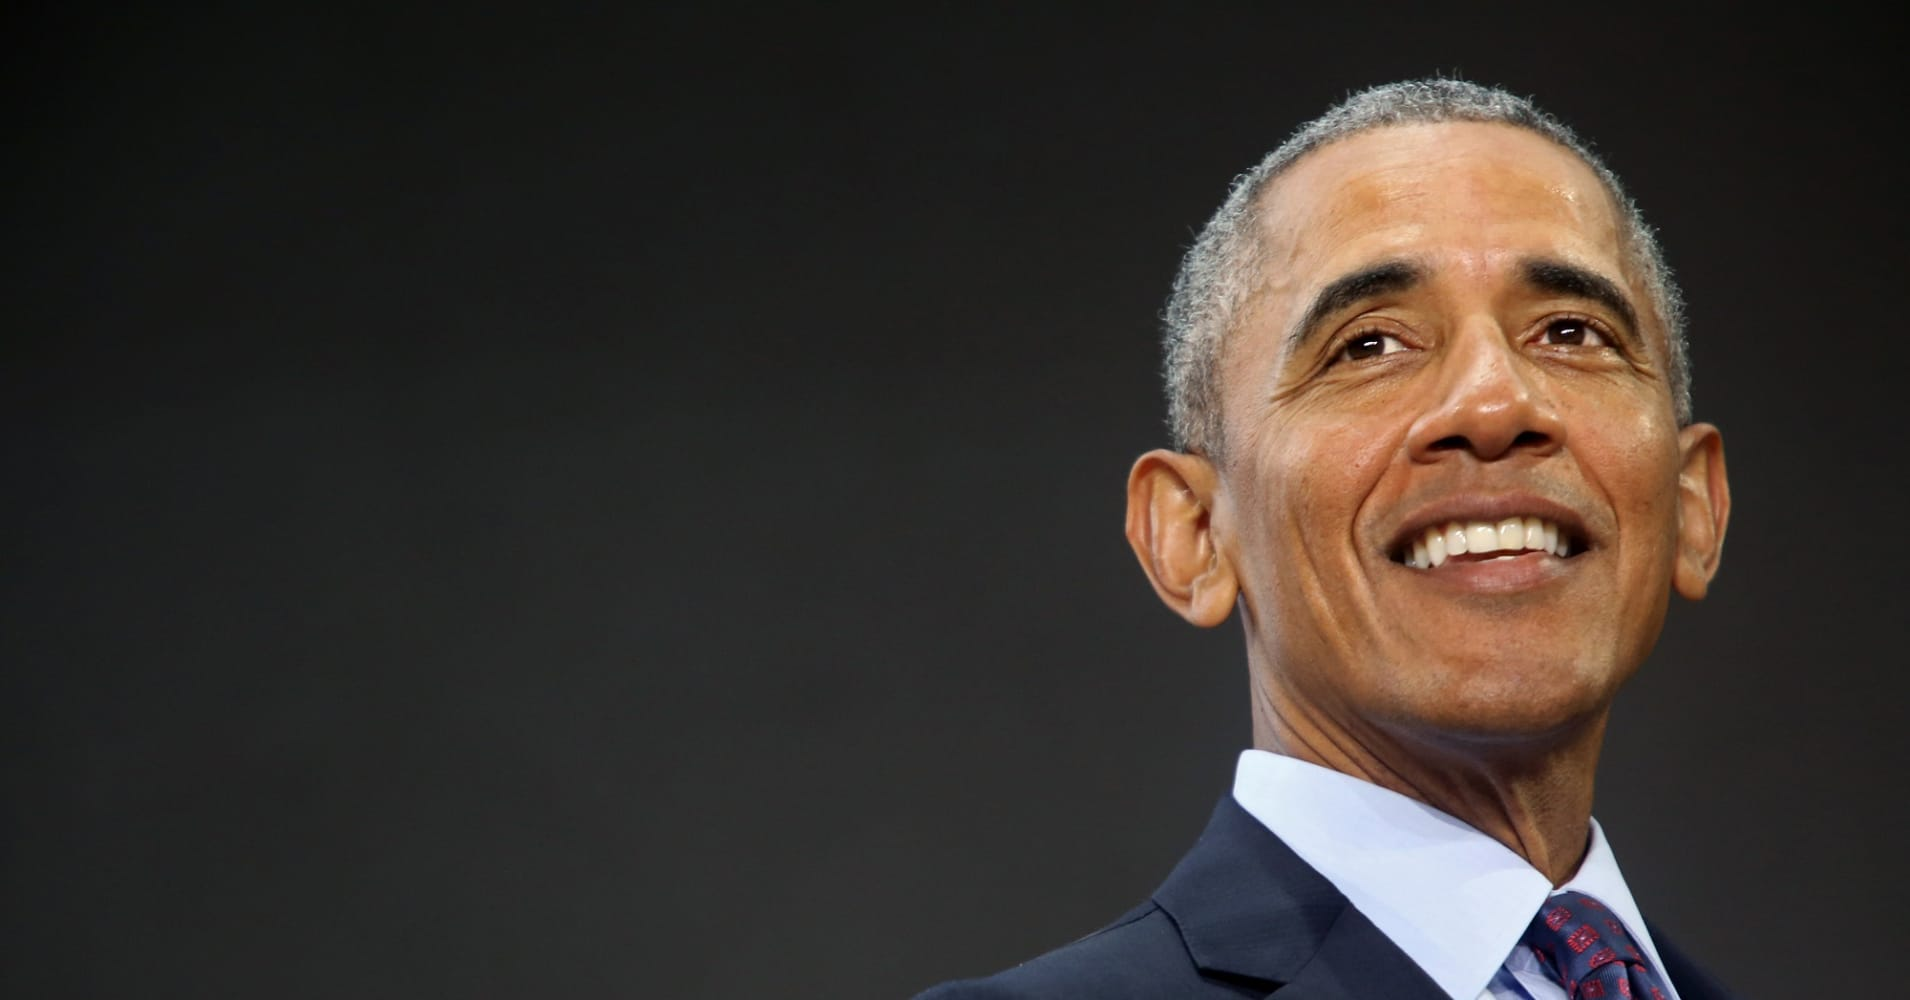 Barack Obama's inspiring New Year's challenge: 'Make a commitment'